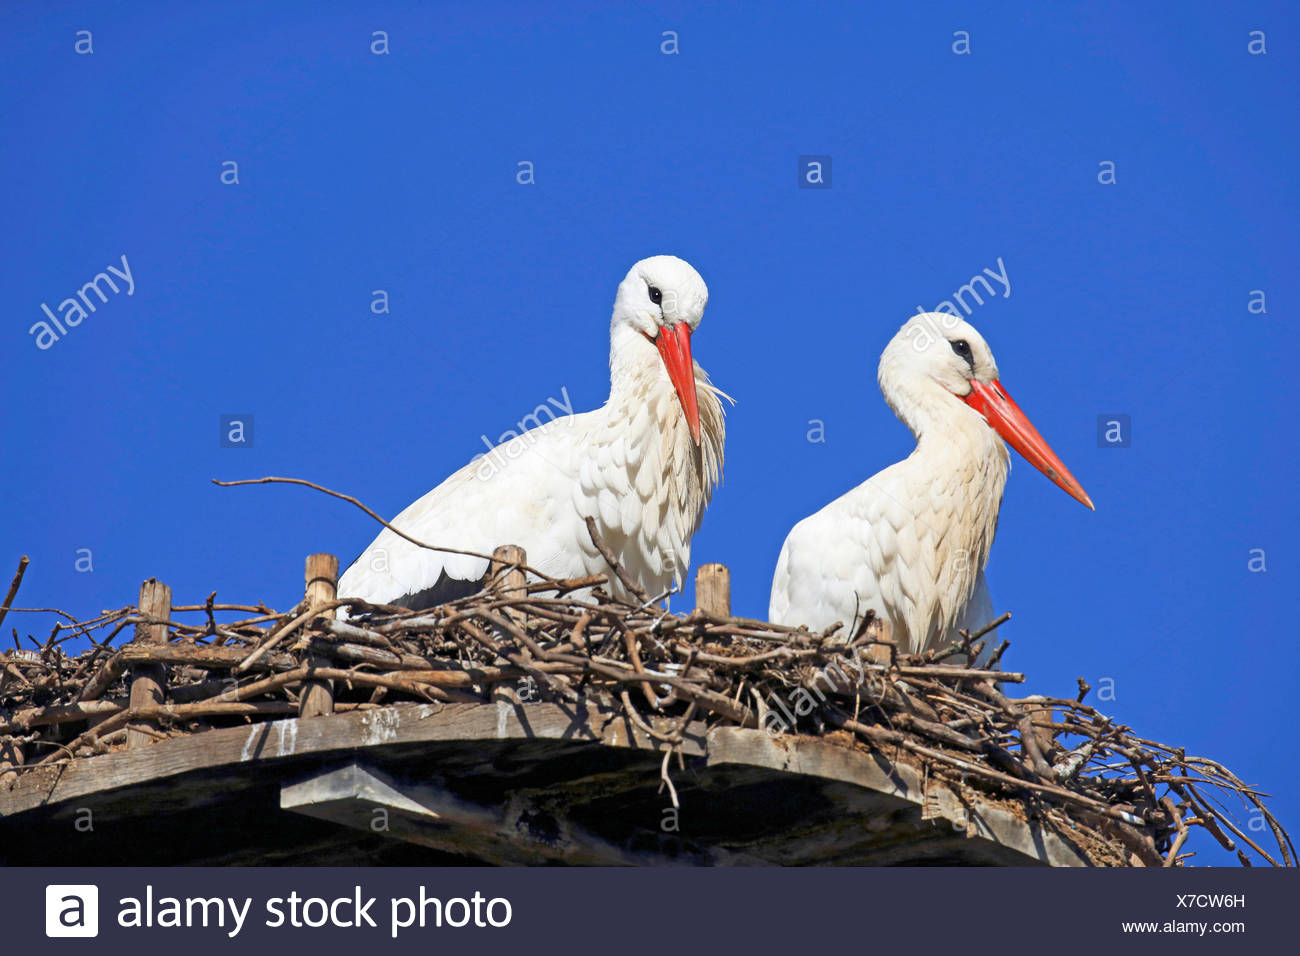 white stork (Ciconia ciconia), two storks sitting in the nest, Germany - Stock Image